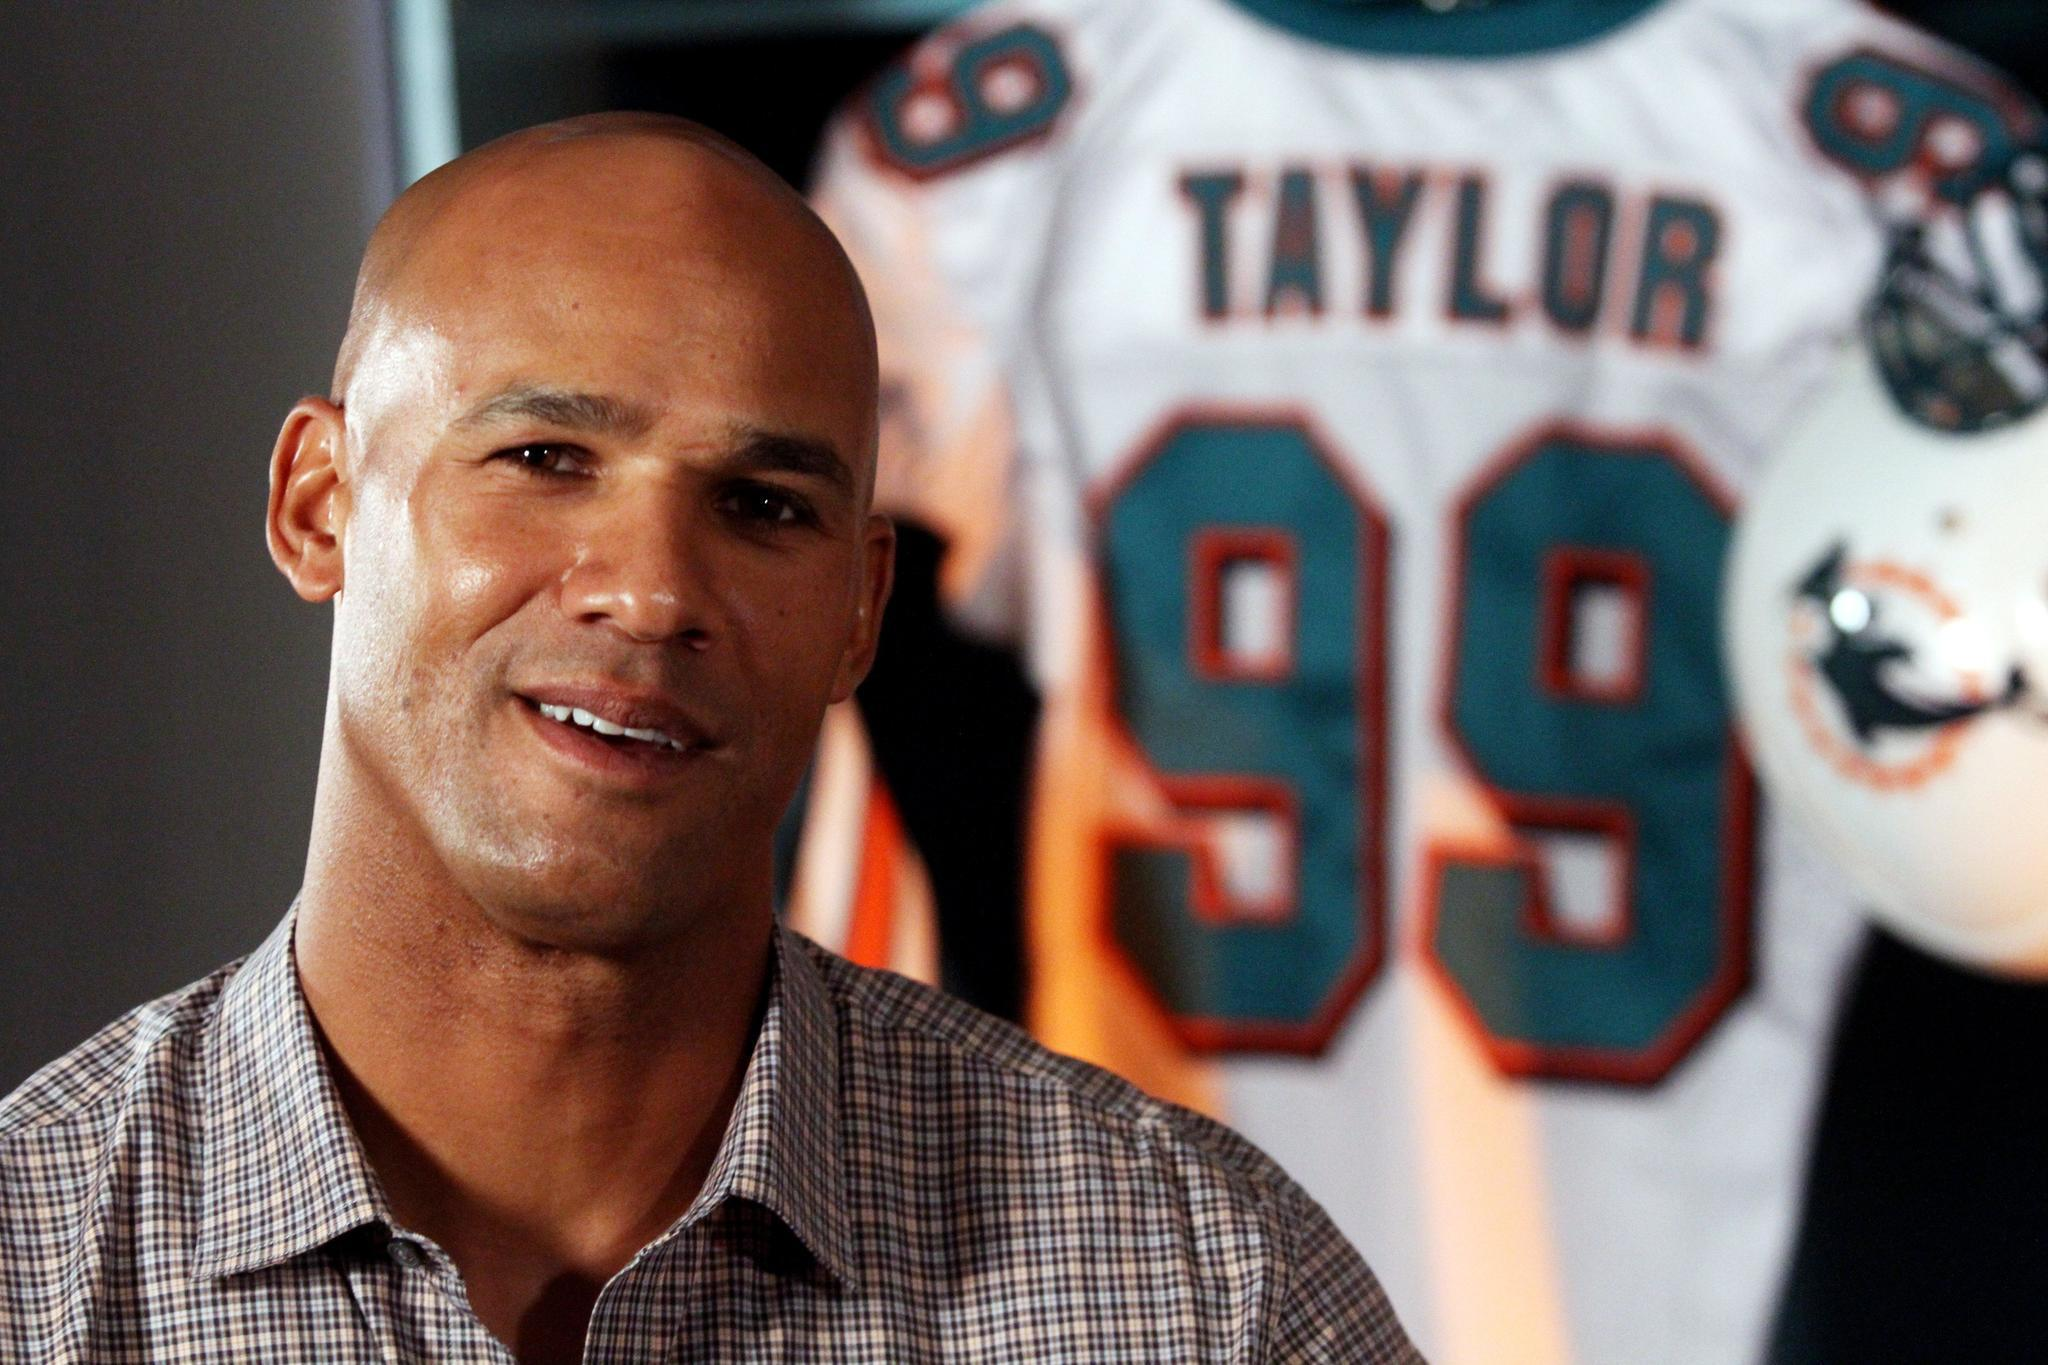 Meet miami dolphins great jason taylor zach thomas and new york meet miami dolphins great jason taylor zach thomas and new york giants hall of famer lawrence taylor at dunkin donuts in lake worth on thursday oct 21 m4hsunfo